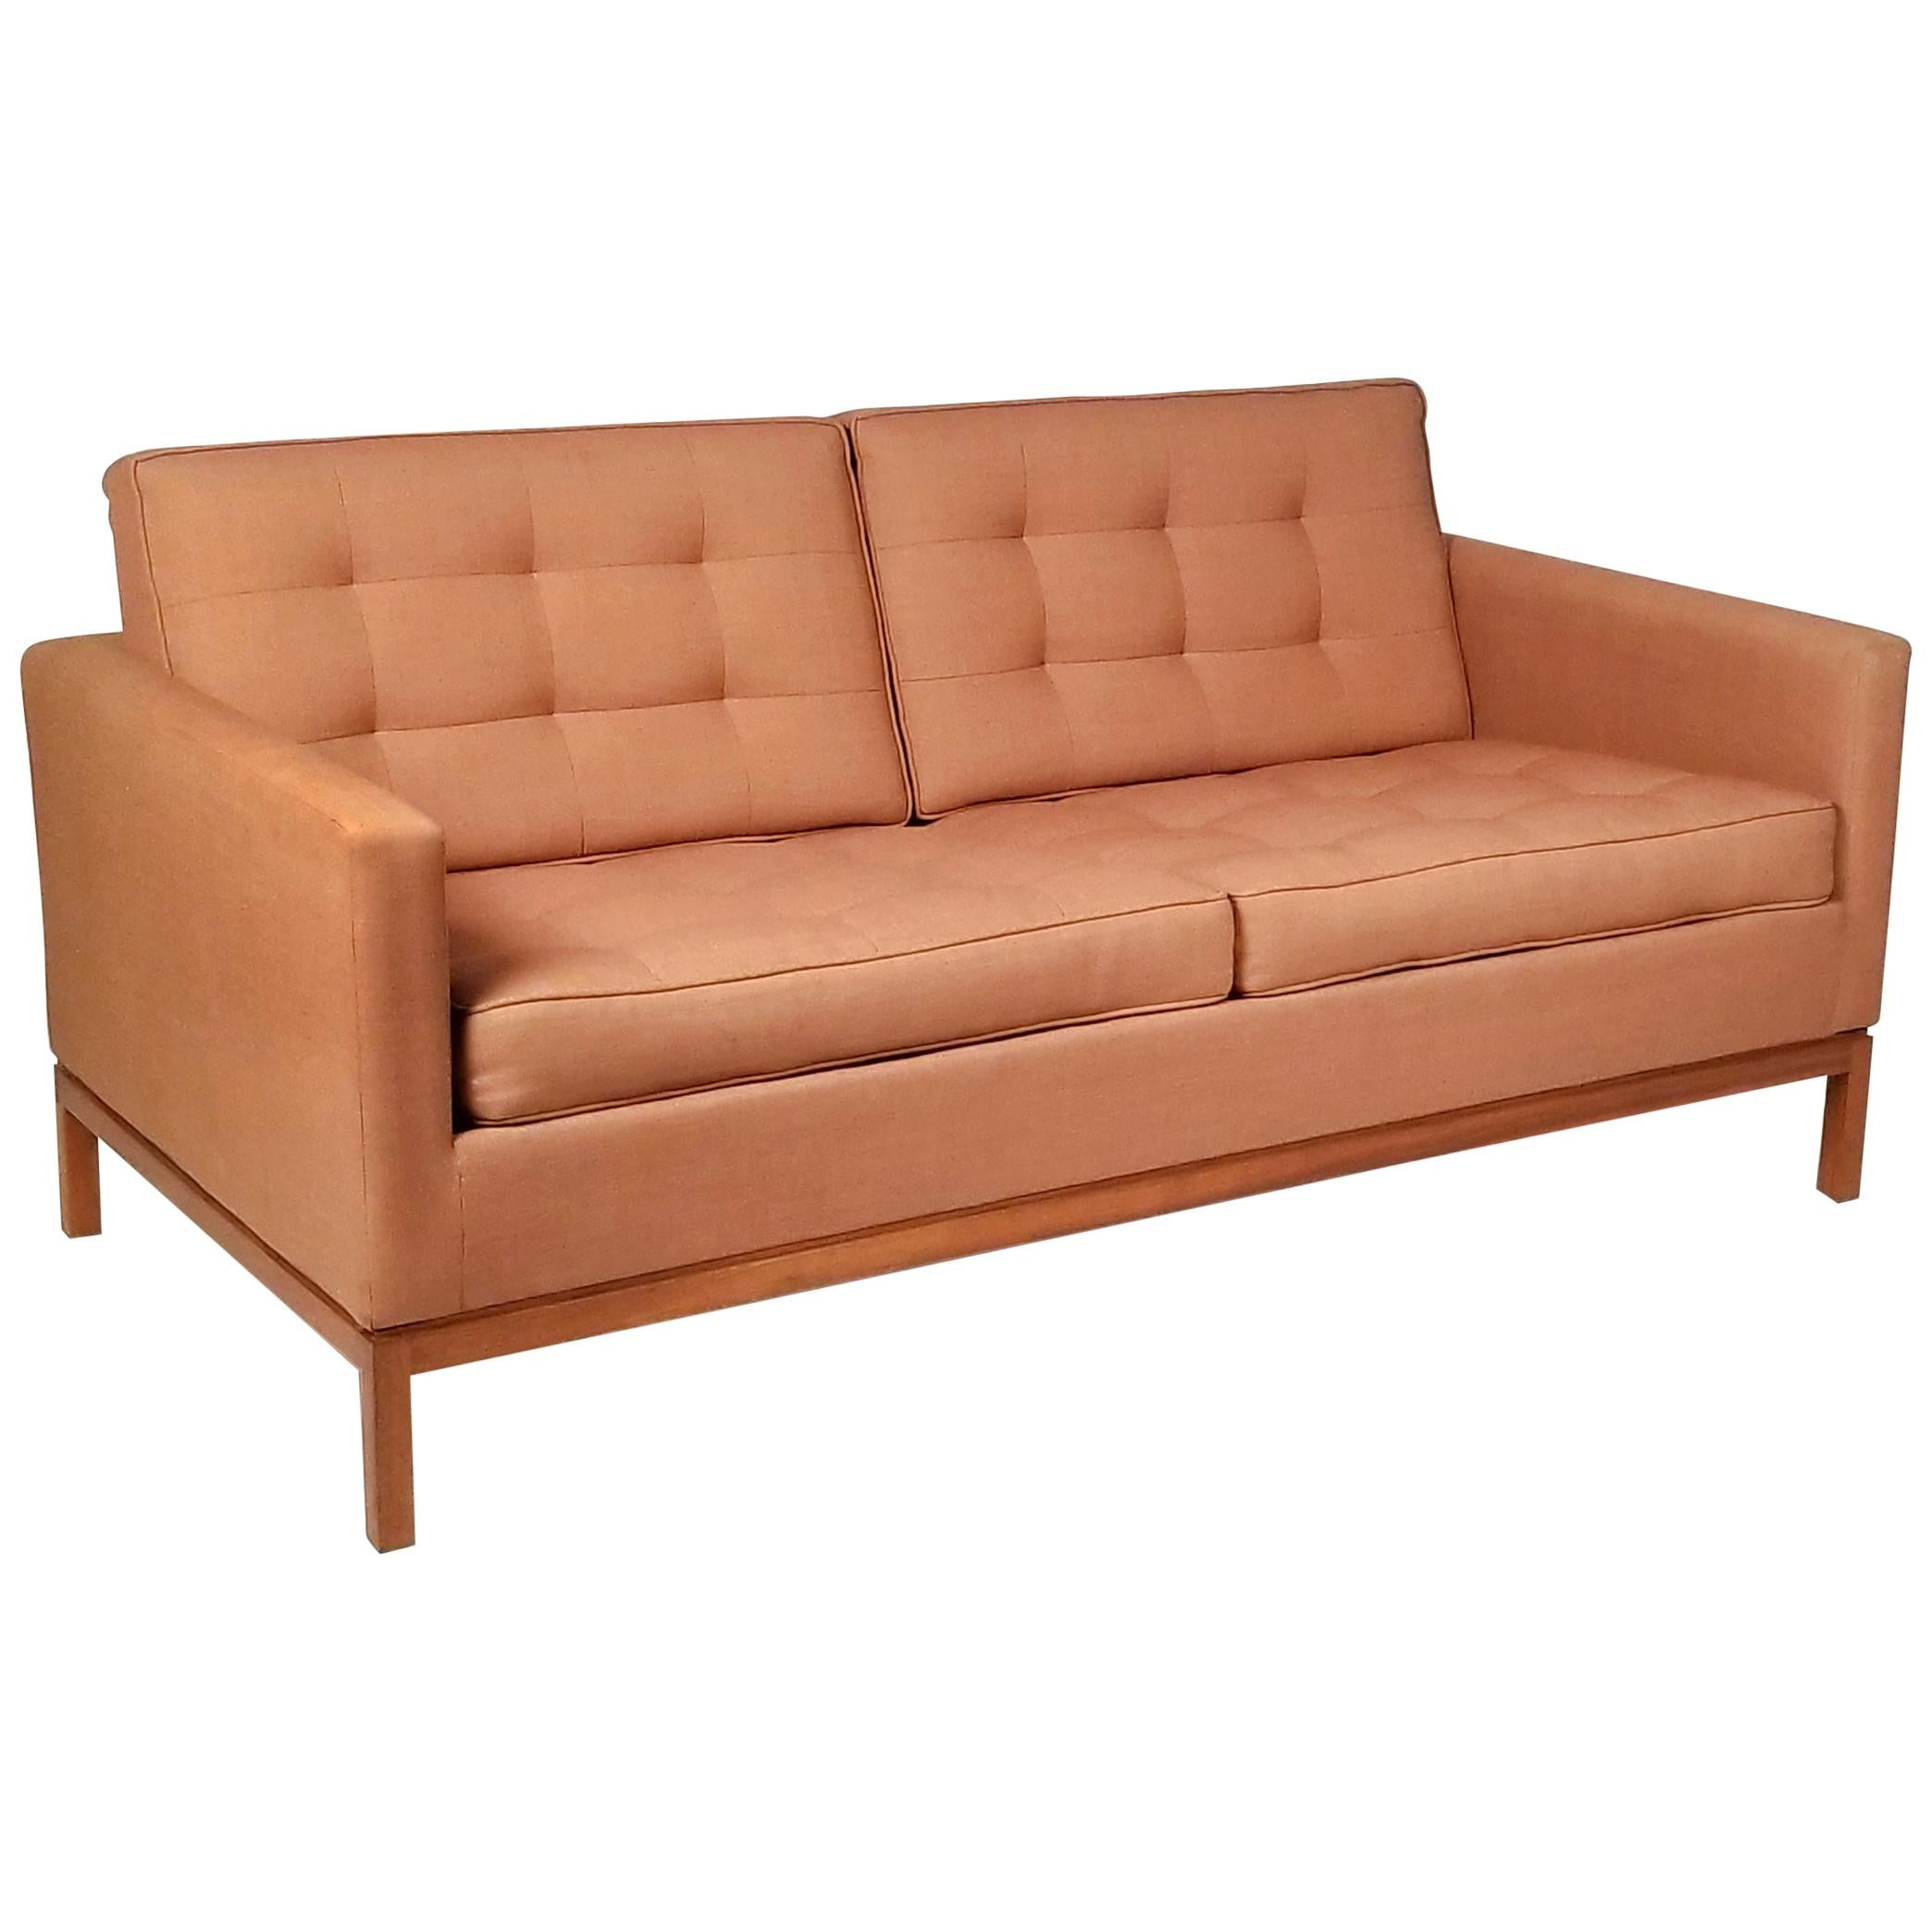 Two-Seat Sofa Designed by Florence Knoll for Knoll International